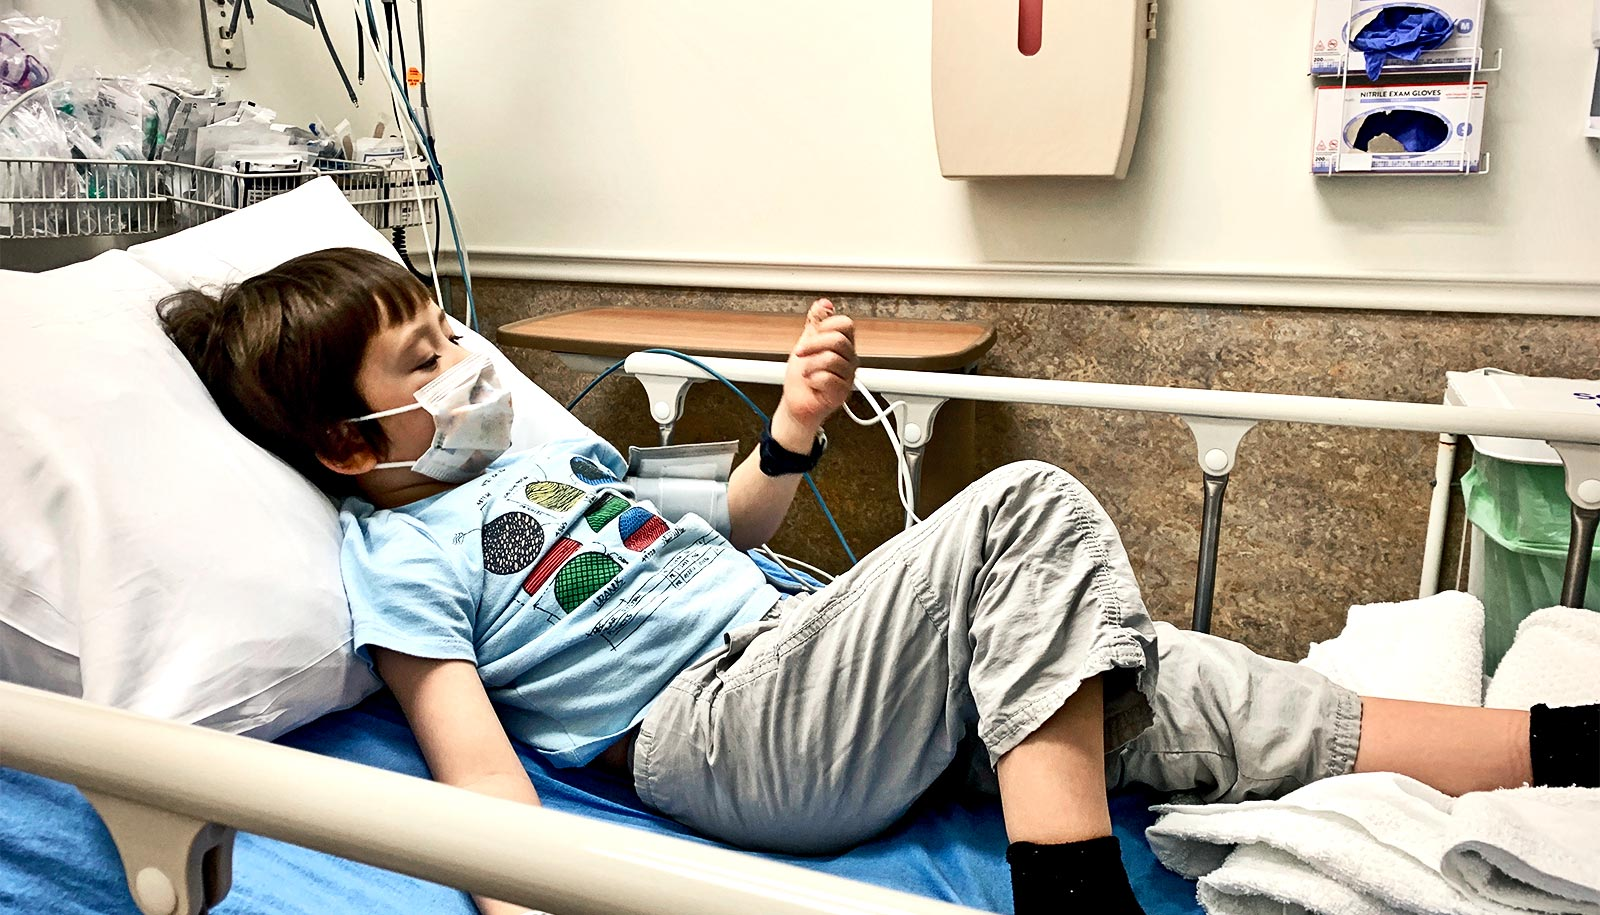 Experts: Don't restrict parent visits to child's hospital bedside - Futurity